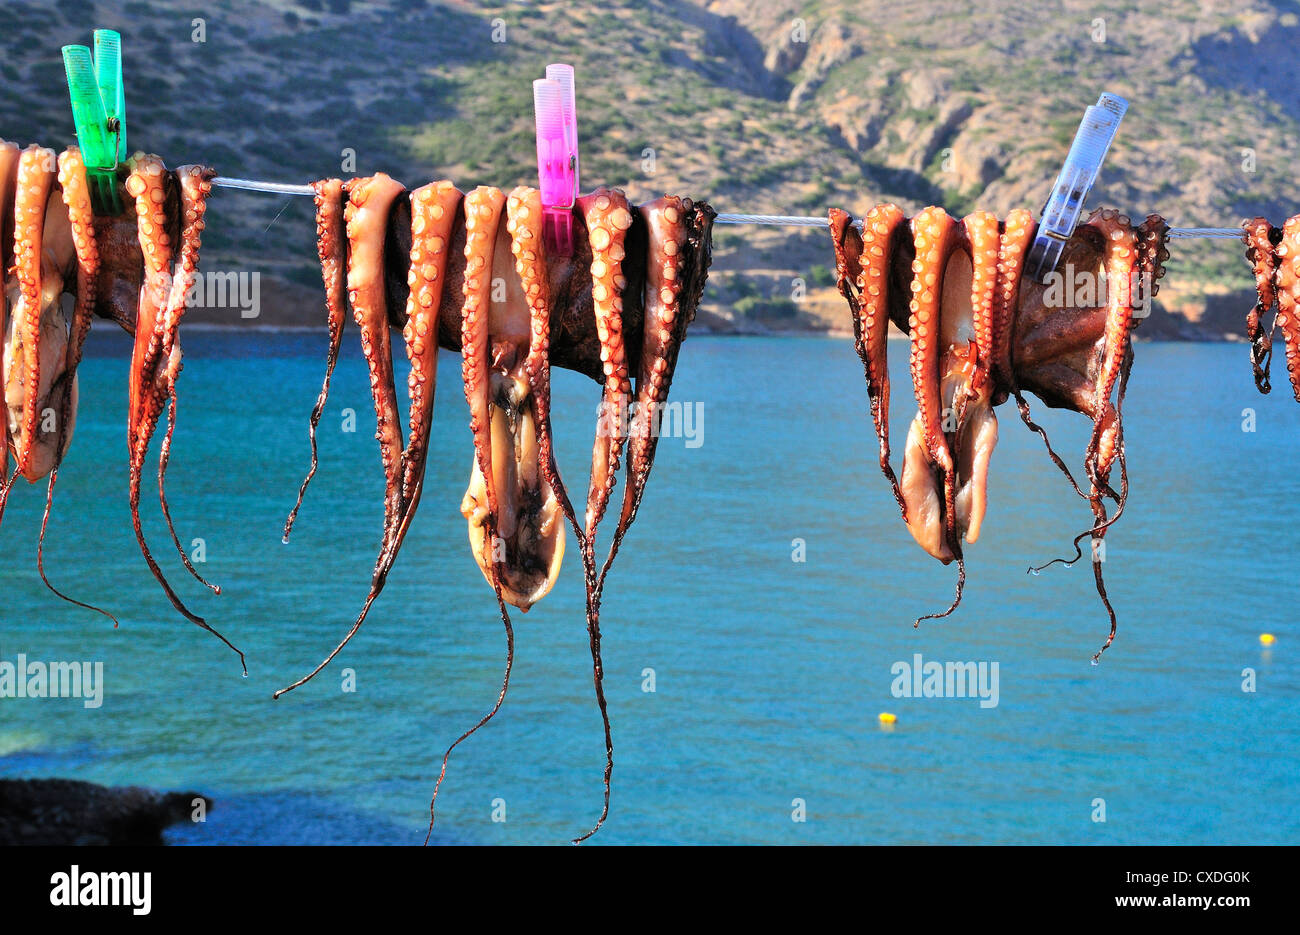 Freshly caught calamari or squid pegged out  on a line and drying in the sun outside a taverna in Plaka, near  Elounda, - Stock Image